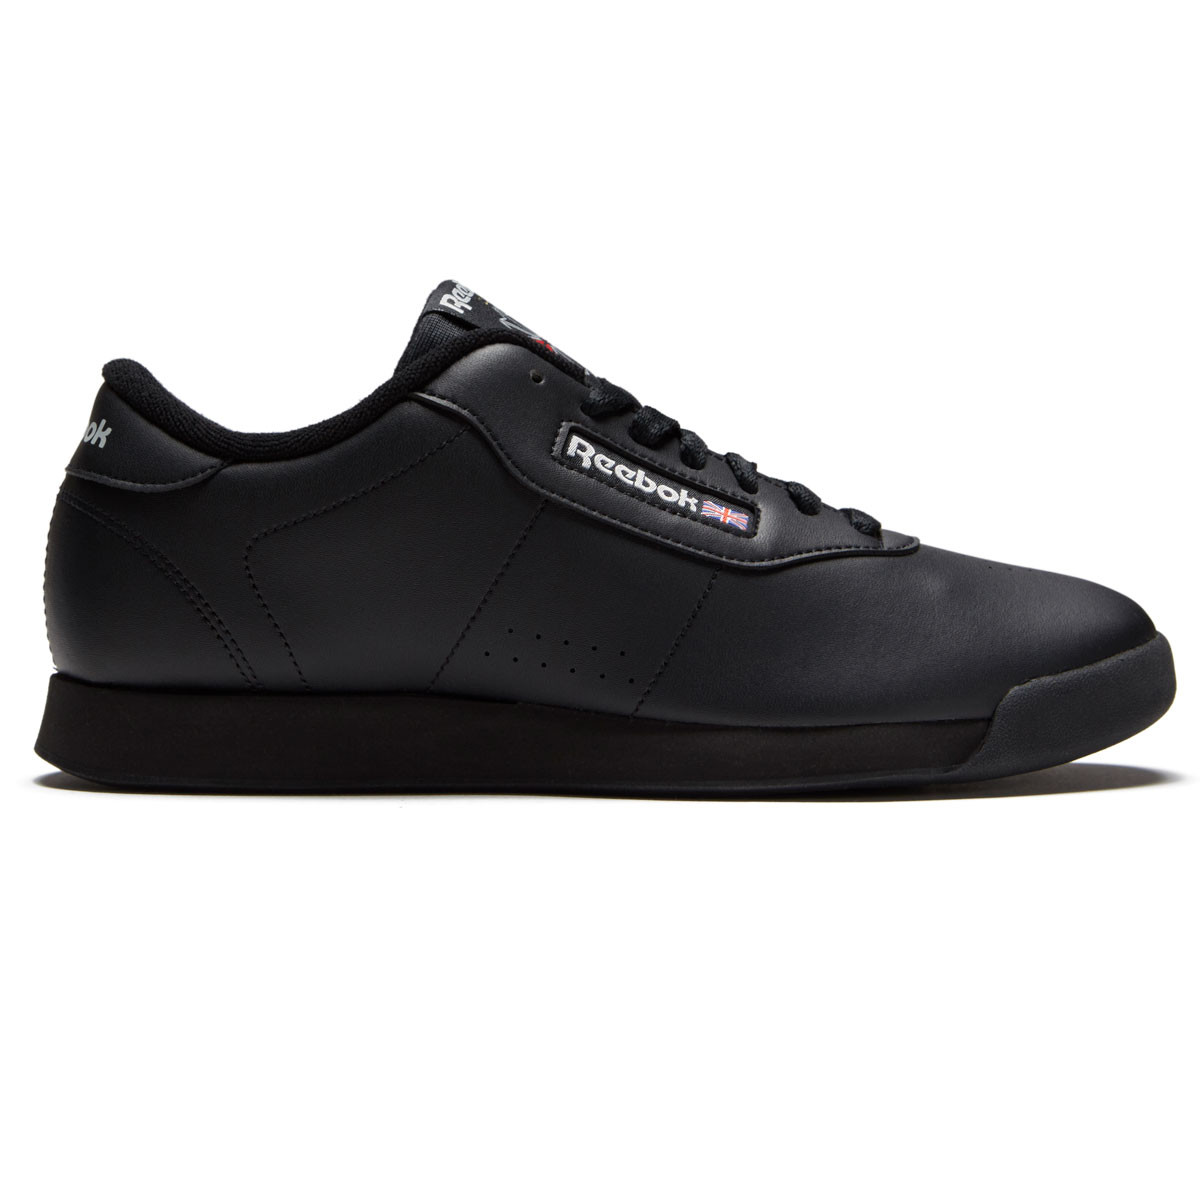 0e5b0dcff6a1 Reebok Womens Princess Shoes - Black - 10.0